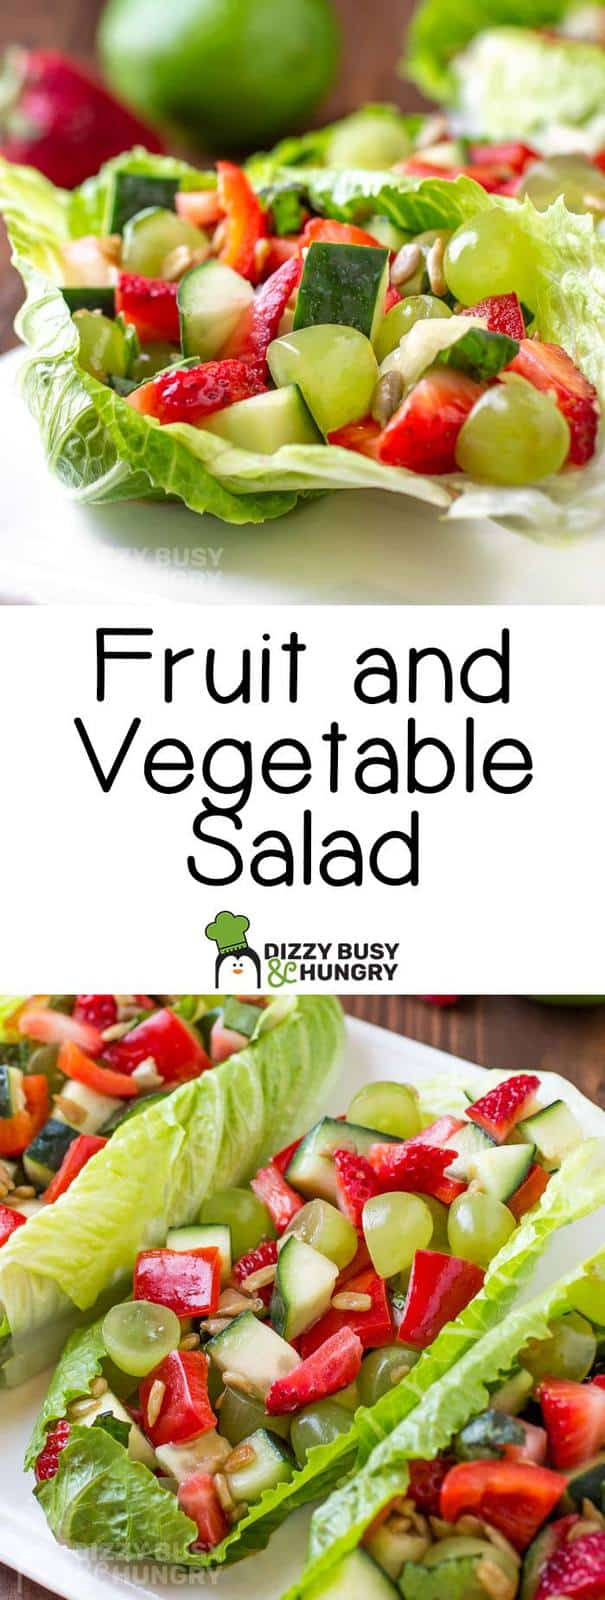 Long pin of the fruit and vegetable salad with two photos and text in between